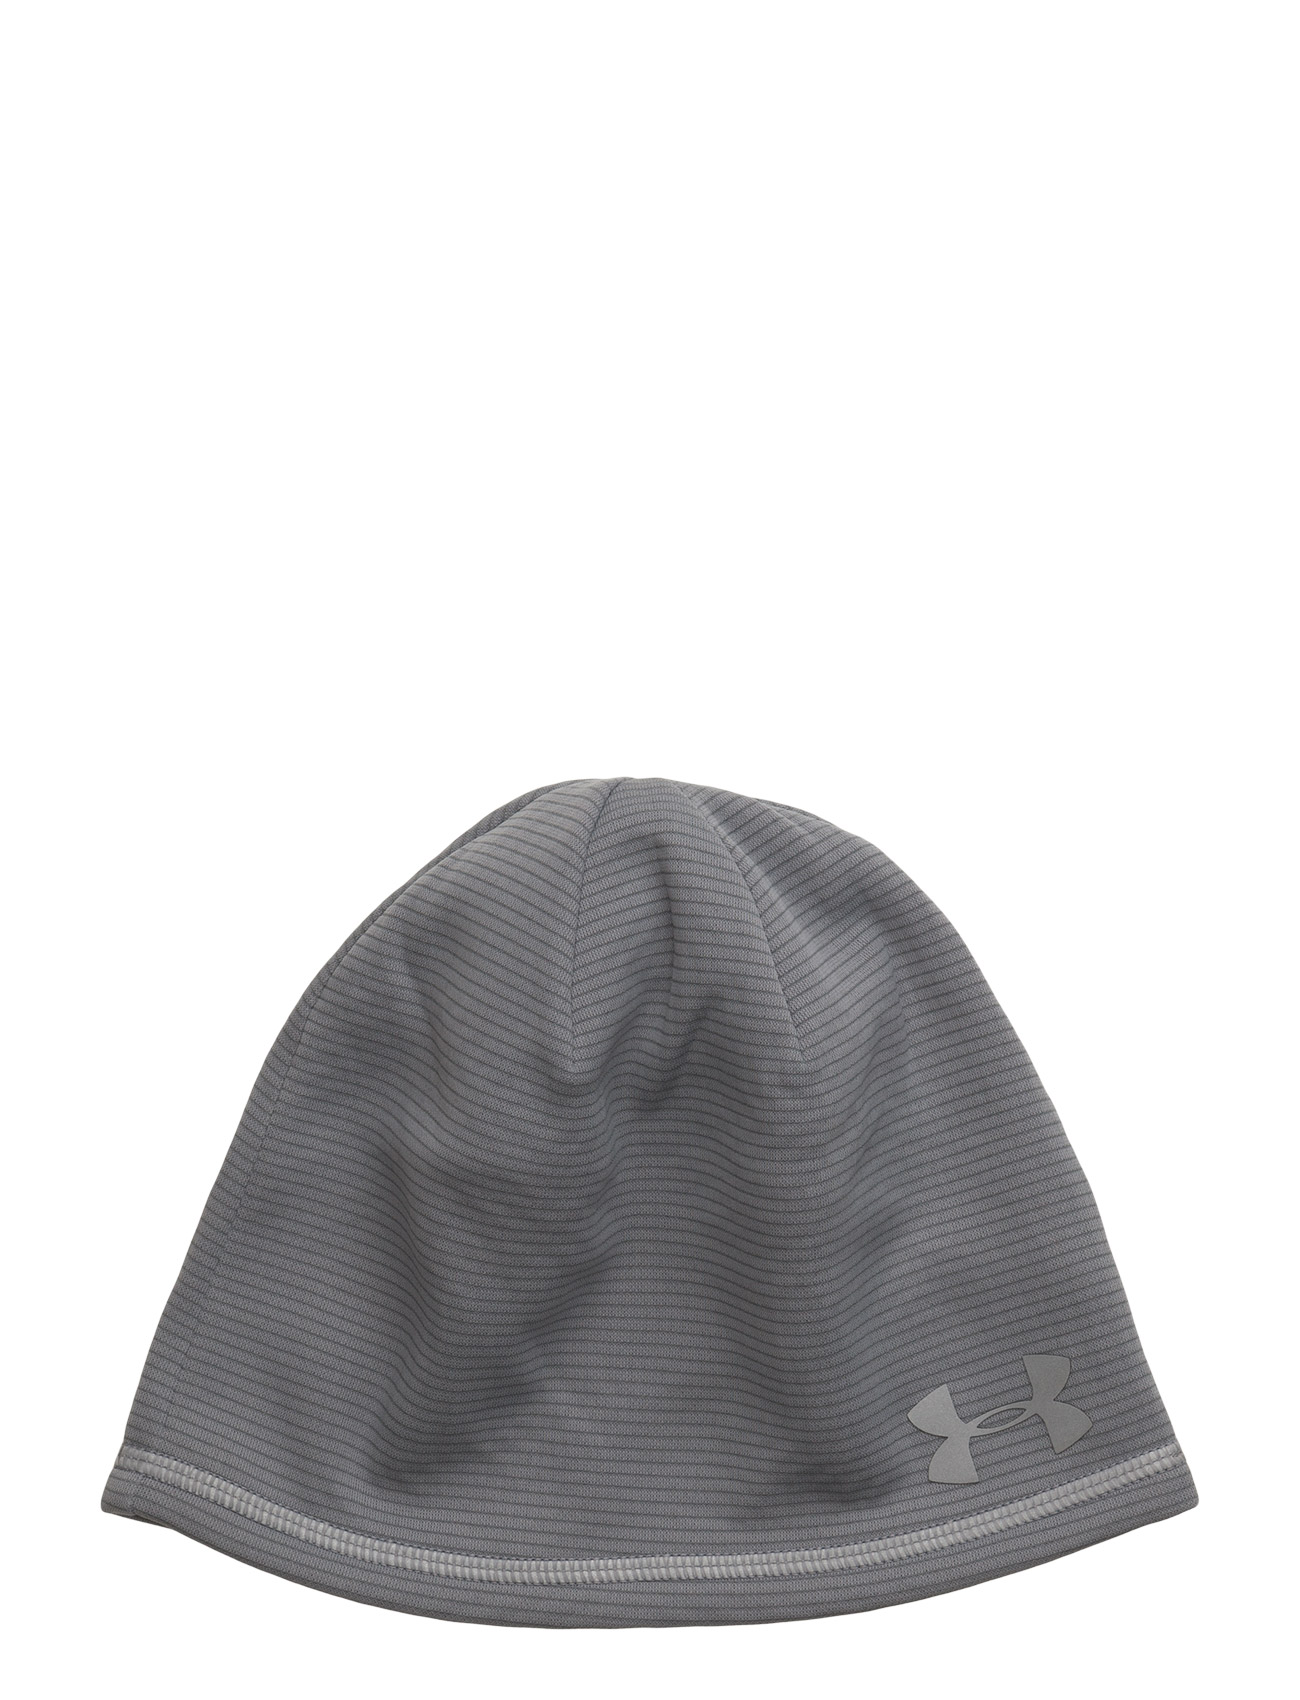 under armour – Men's ua t400 run beanie på boozt.com dk